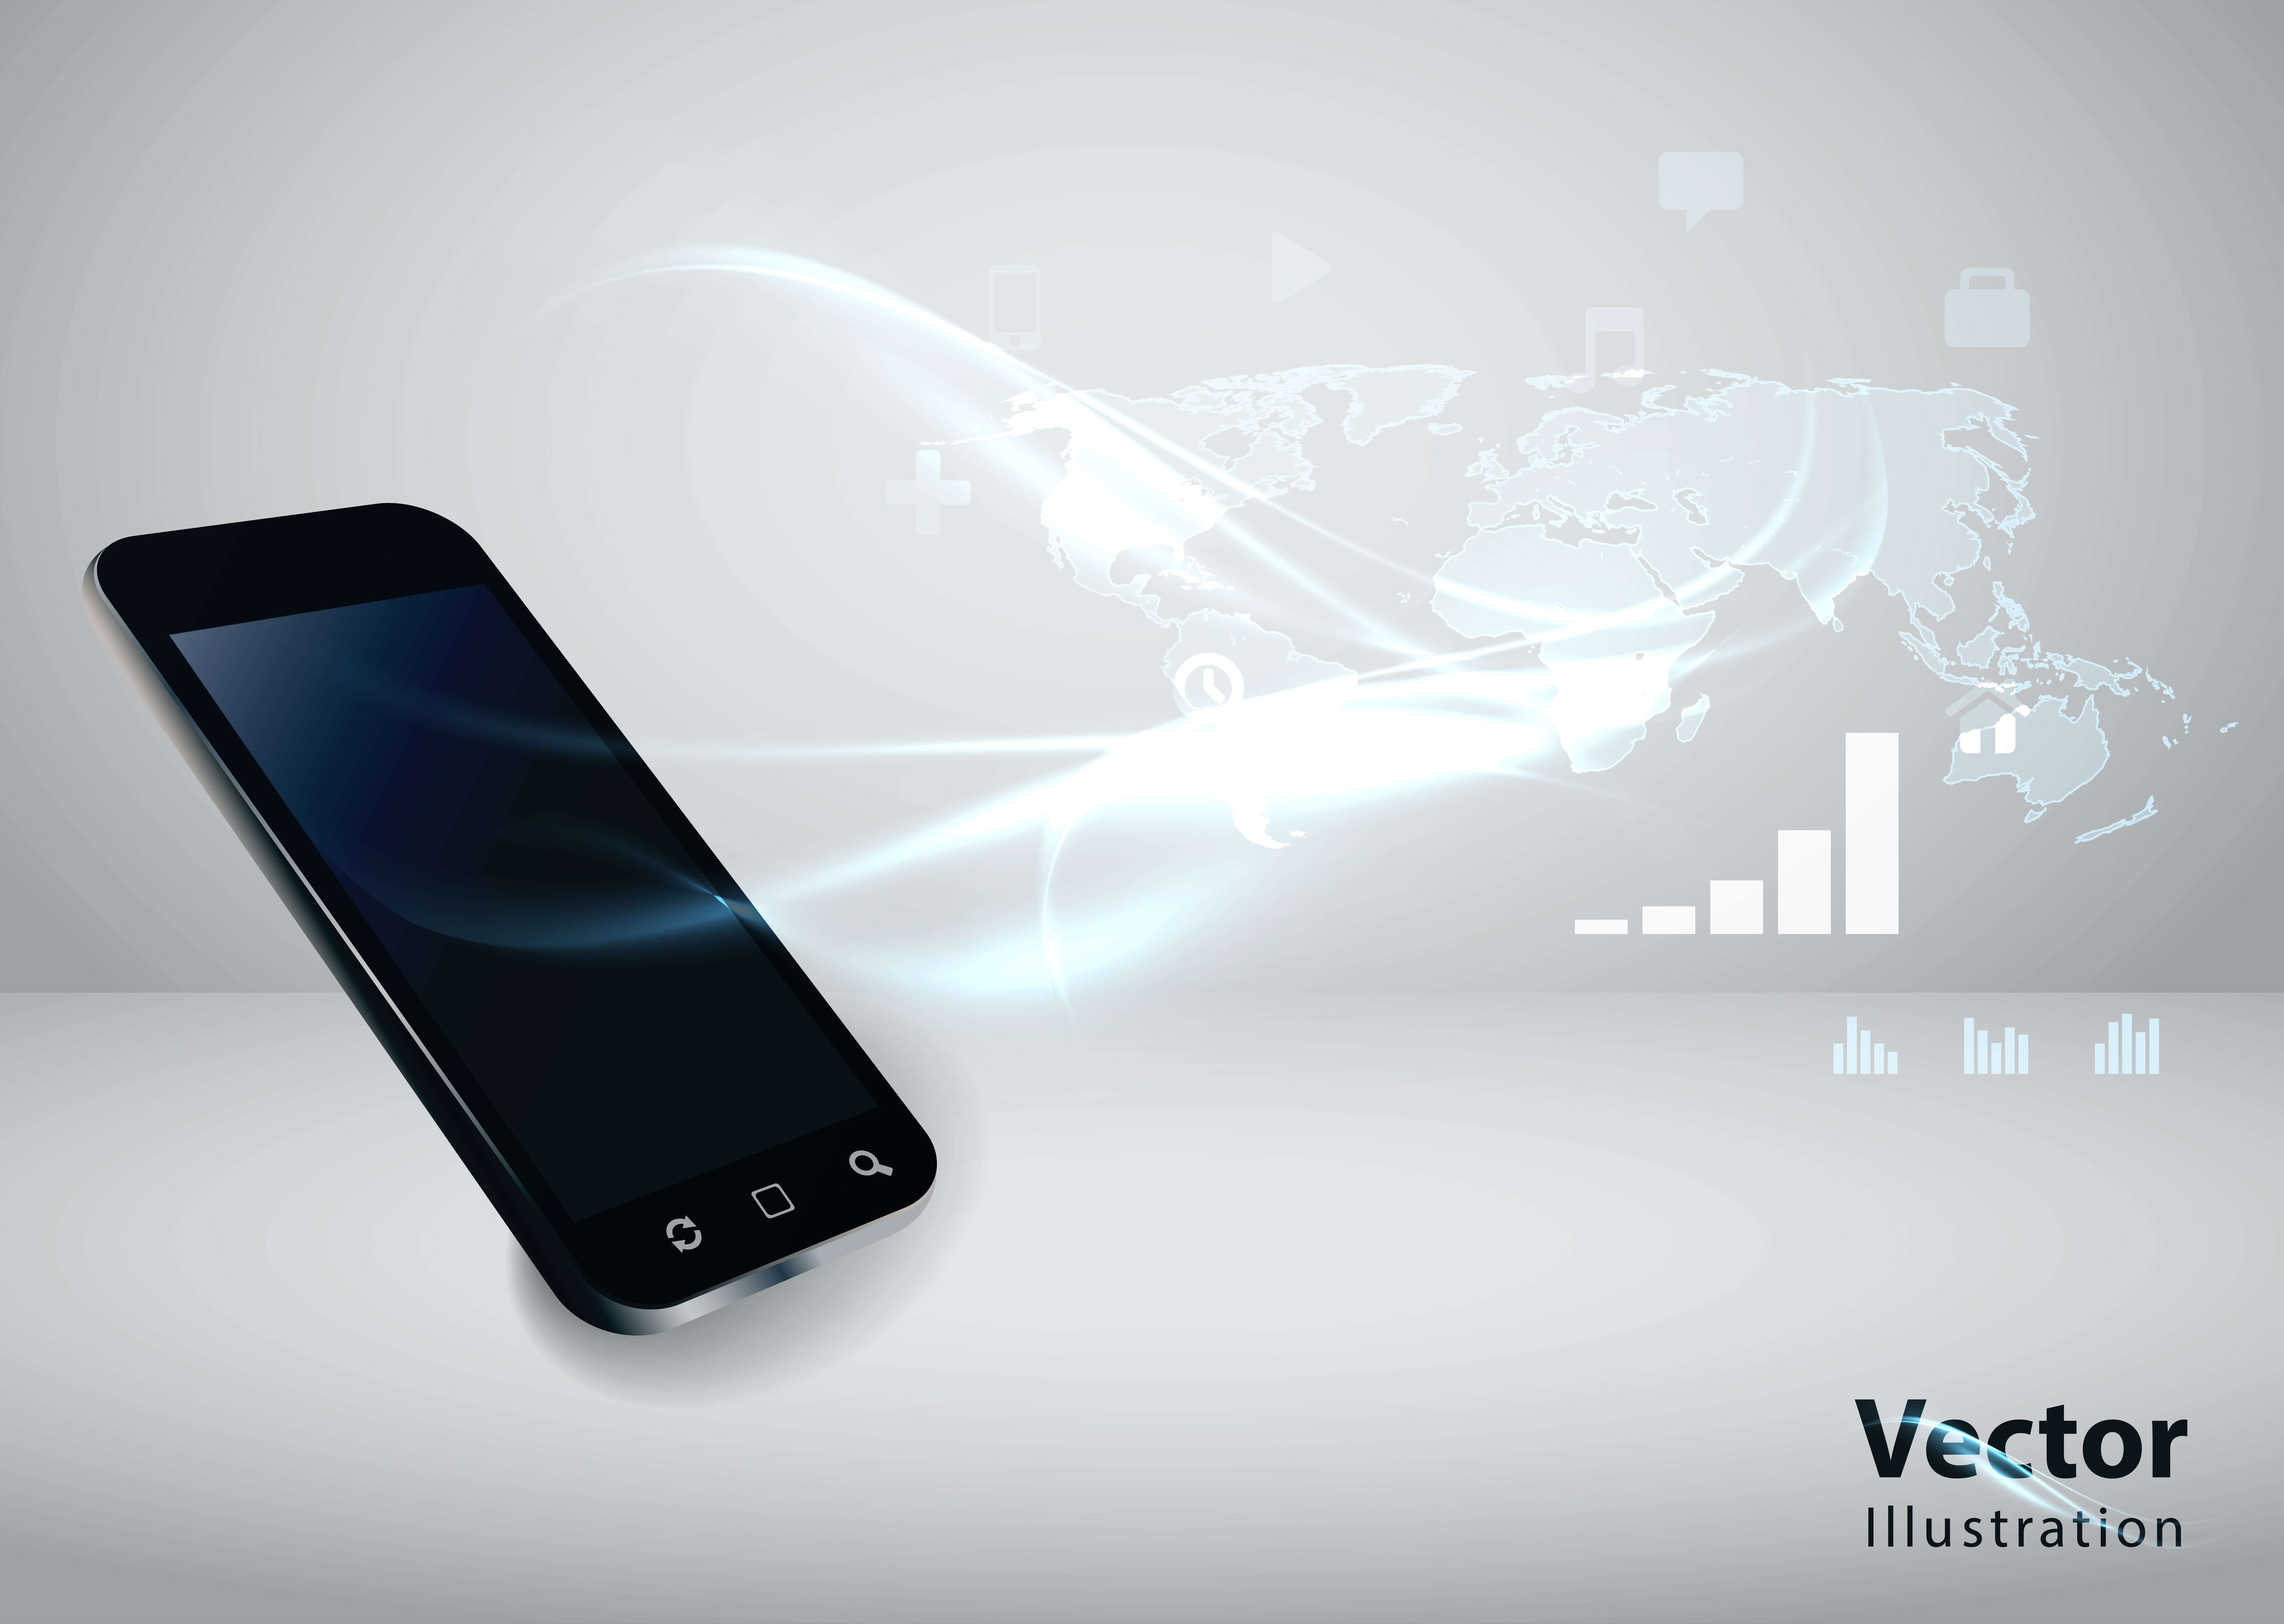 Richard Vanderhurst - Mobile Marketing Make Customers' Phones Your Sales Tools